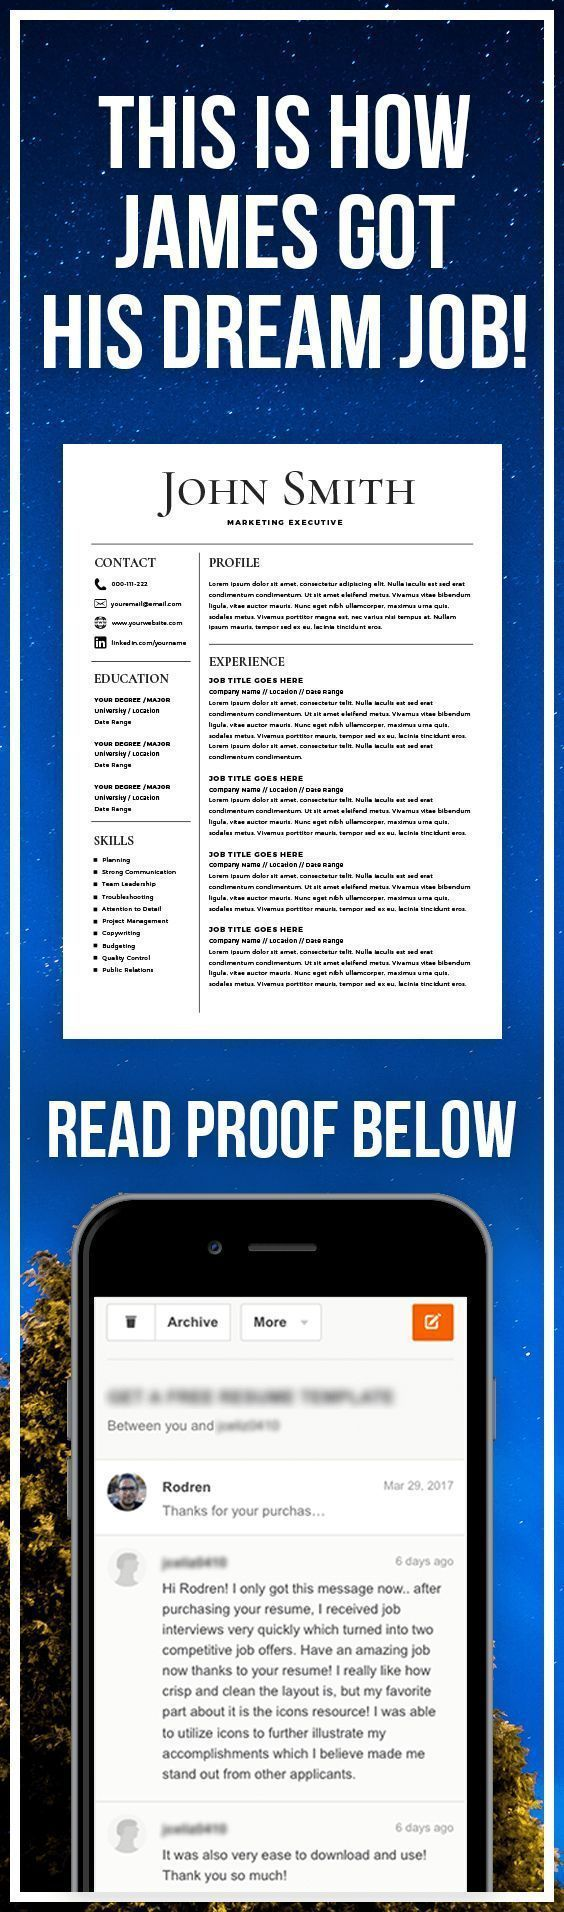 HOW TO GET YOUR DREAM JOB - Resume Template - CV Template - Free Cover Letter - MS Word on Mac / PC - Design - Professional - Best Resume Templates - Instant Download